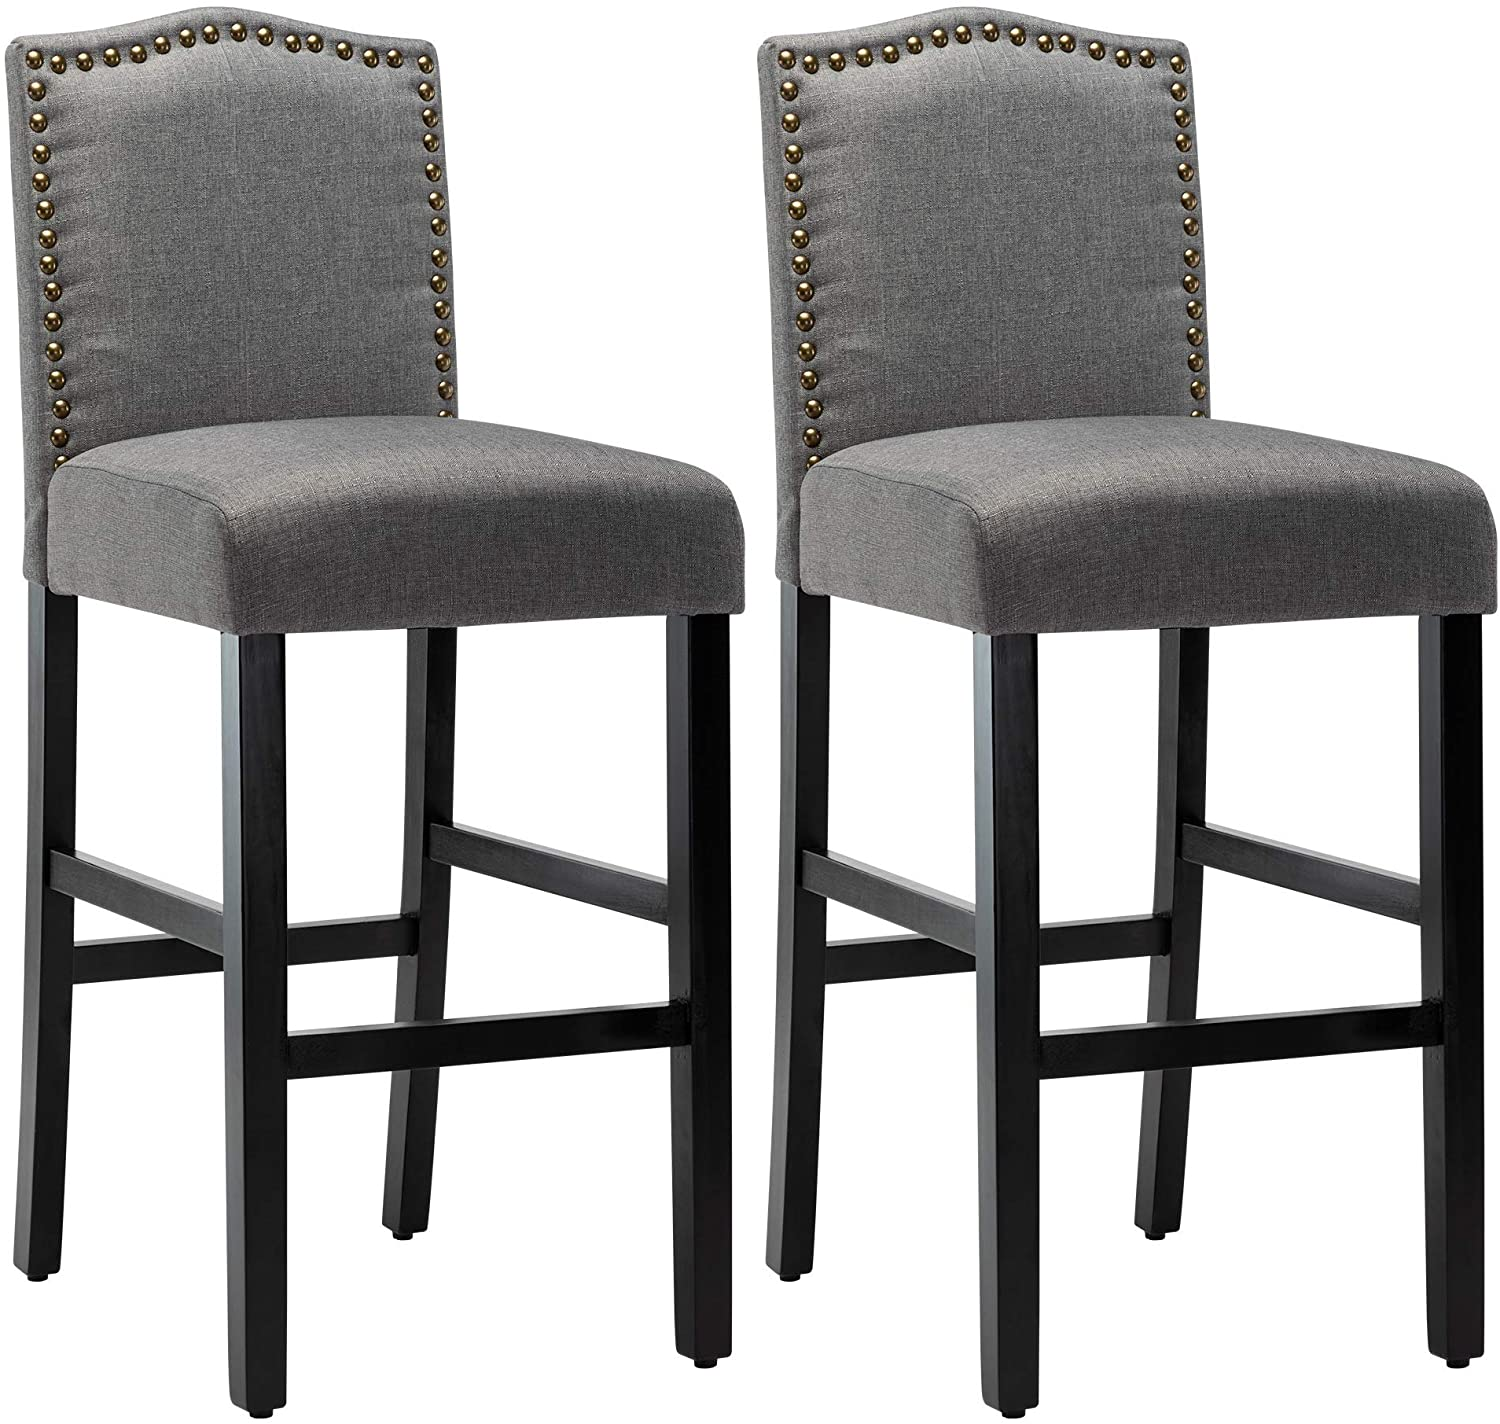 LSSPAID 29.5 inches Fabric Backed Bar of Set 2 Super special price Ranking TOP8 Co Stools